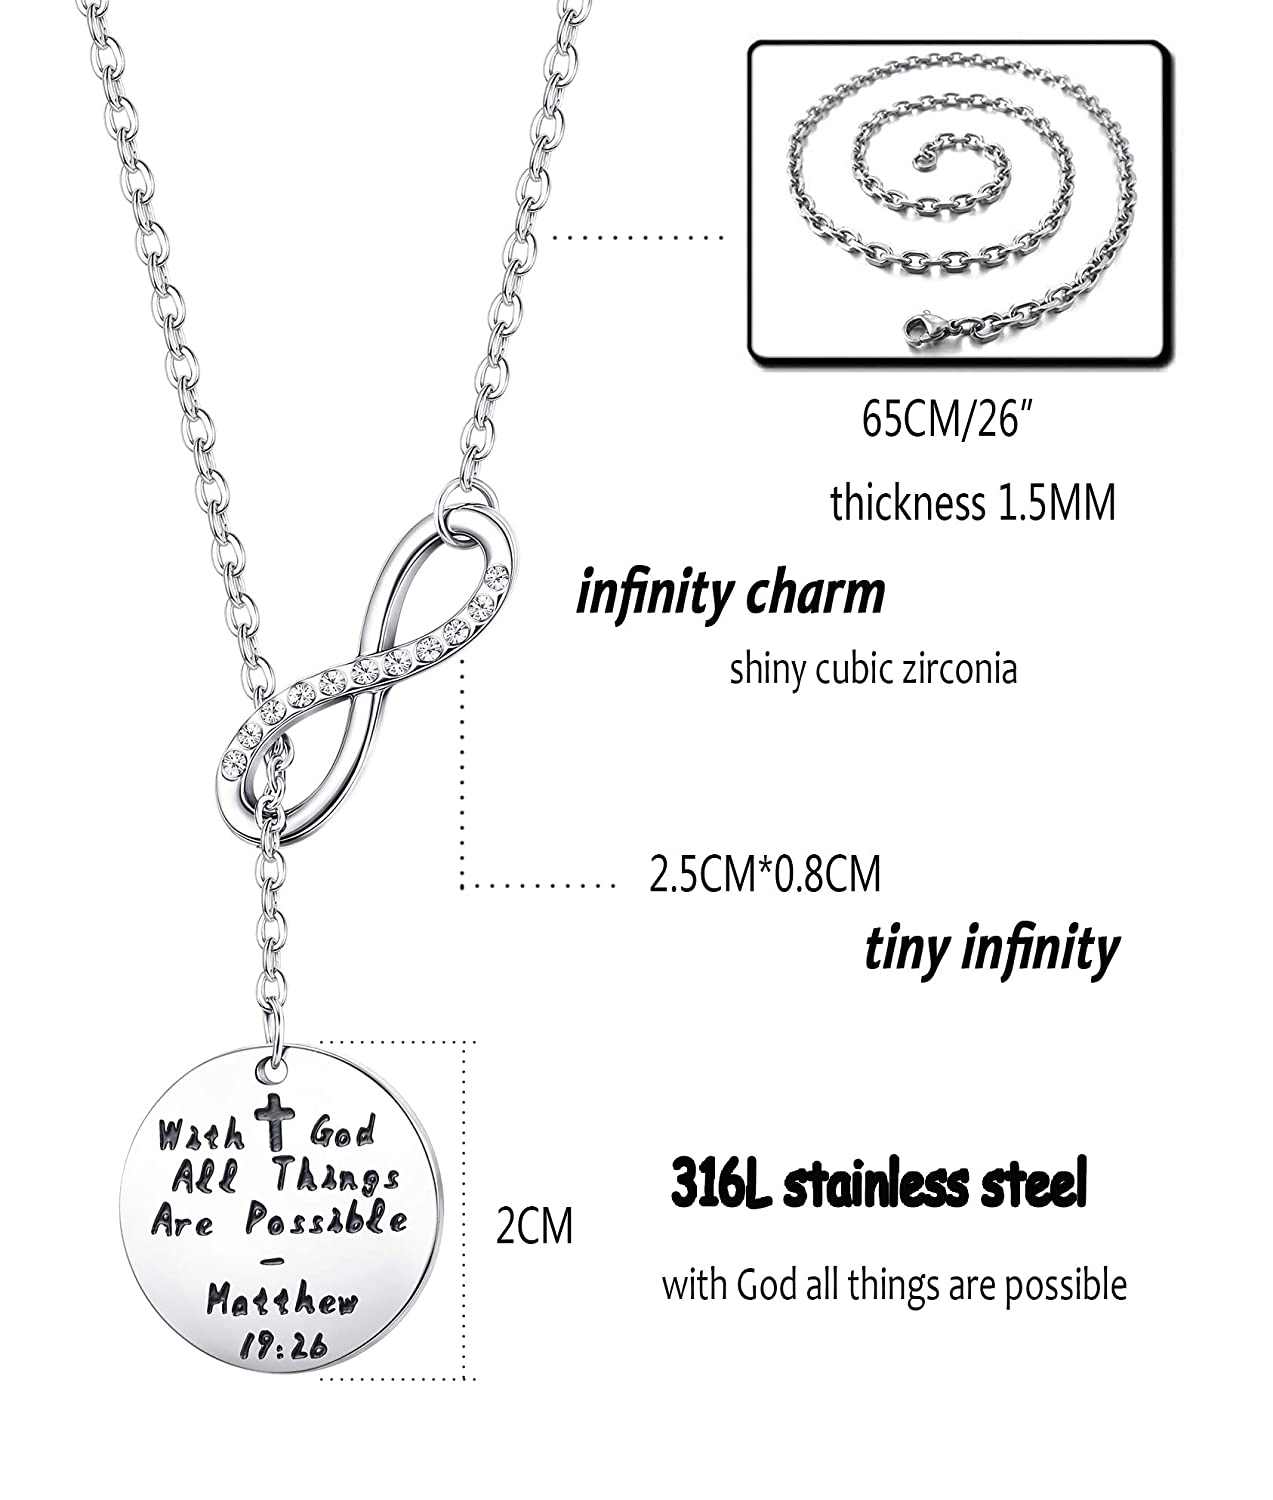 Milacolato 3 Pcs 61CM Stainless Steel Curb Chain Necklace for Men Women Link Necklace 3.5mm